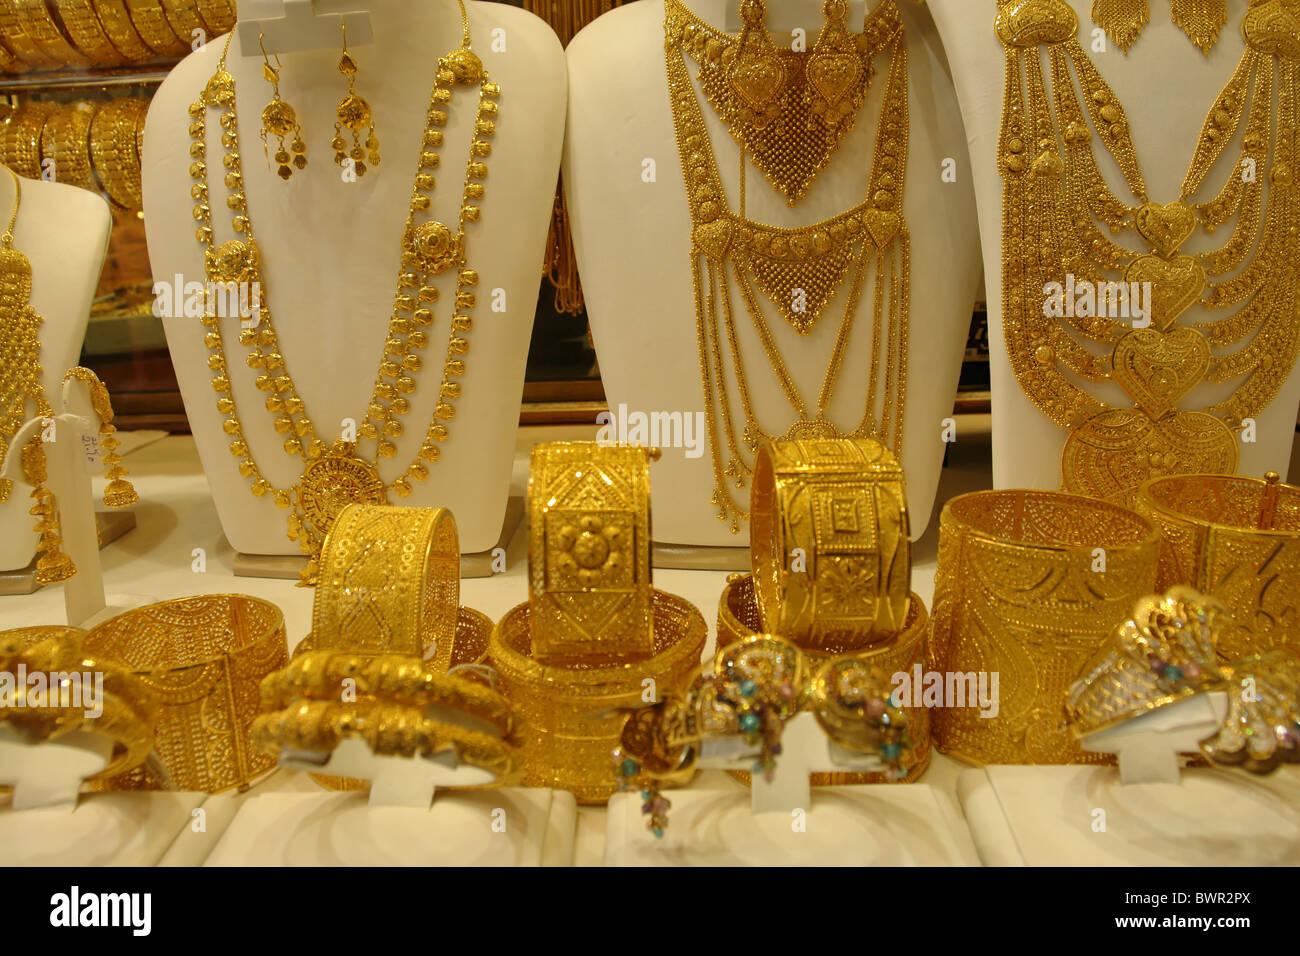 stock middle photo united arab in souk photos east emirates dubai the images alamy gold